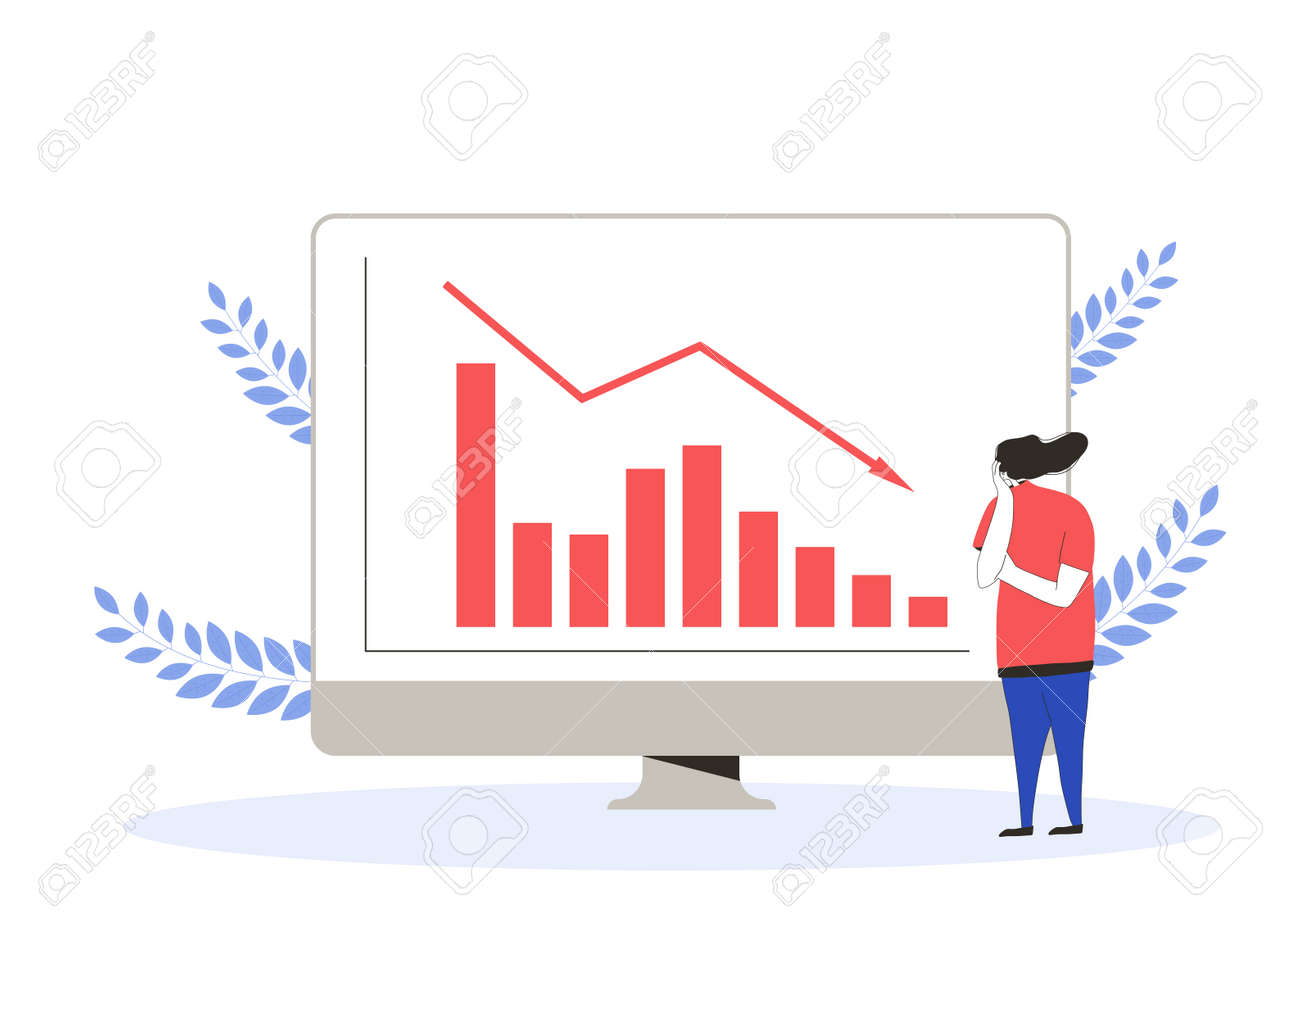 Stock market crash. Invest in the bonds company's bonds fail. currency trader. Sad woman with graphic of stocks plummeting on computer screen. Collapsing prices. Global recession. Vector flat illustration. - 168652657